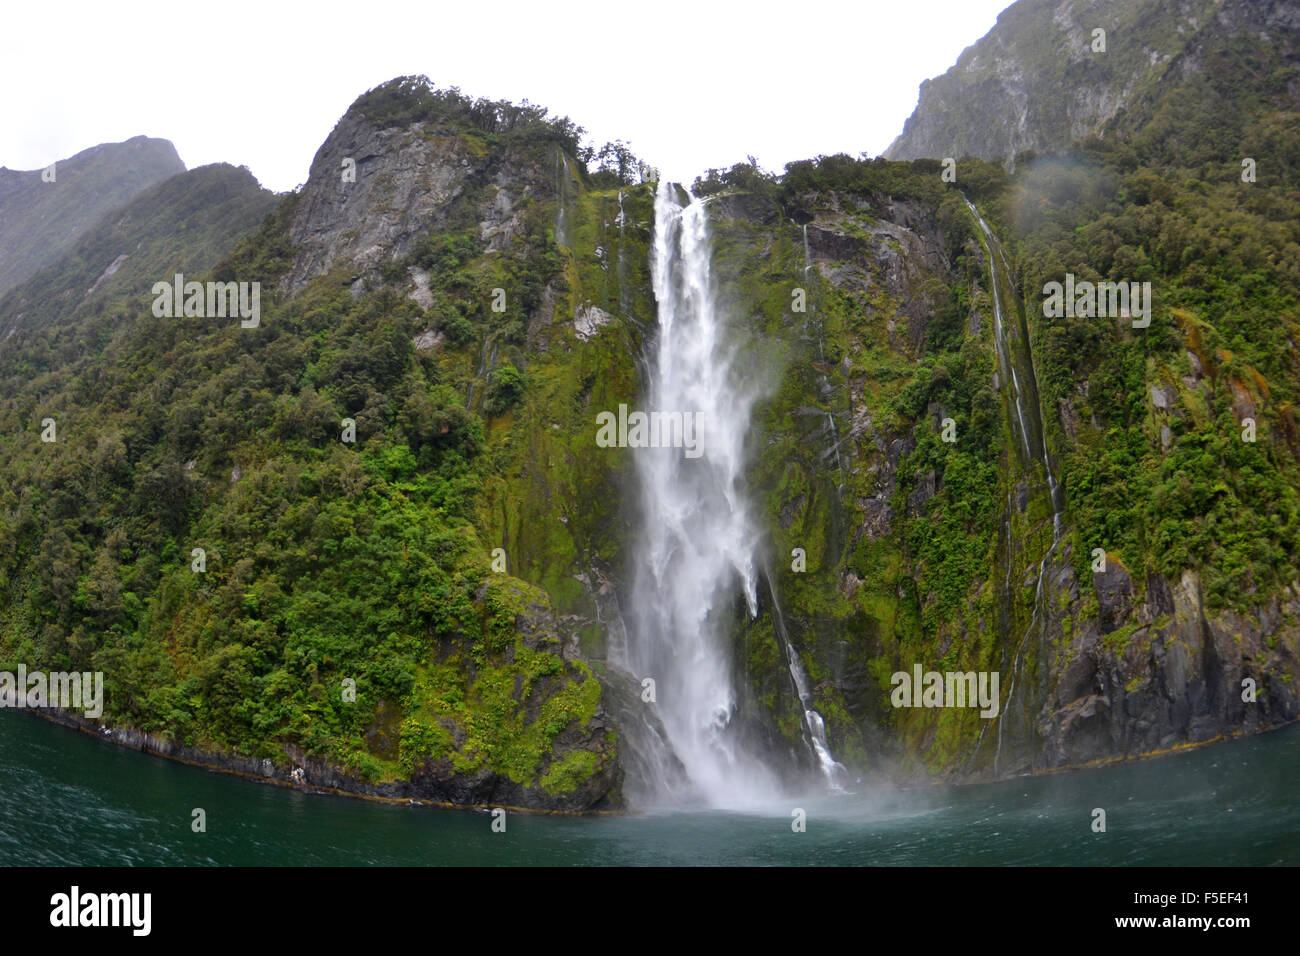 Stirling waterfall, Milford sound, Fiordland National Park, New Zealand - Stock Image